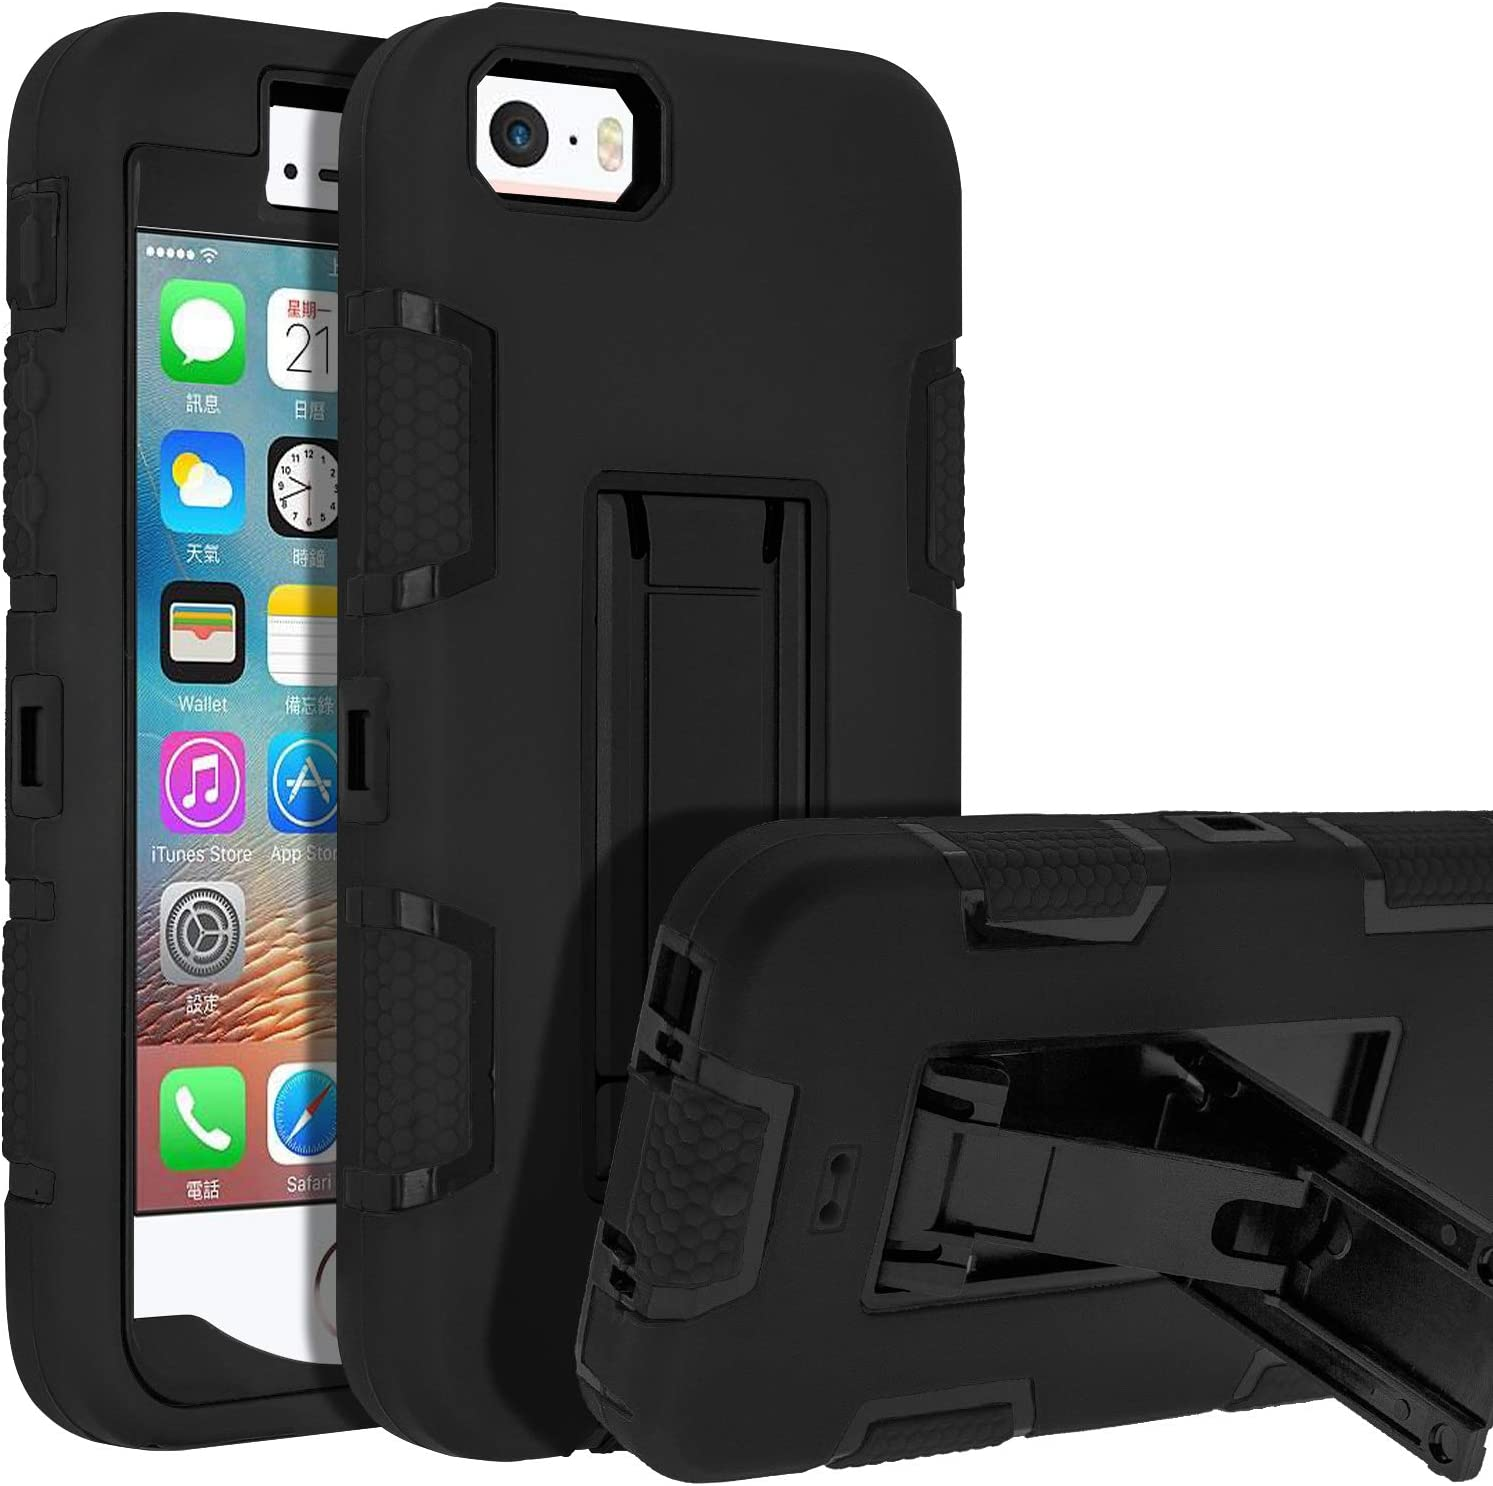 5s iPhone Case, iPhone 5 Case,SENON Shockproof Anti-Scratch Anti-Fingerprint Kickstand Protective Case Cover for Apple iPhone 5S/5, Black